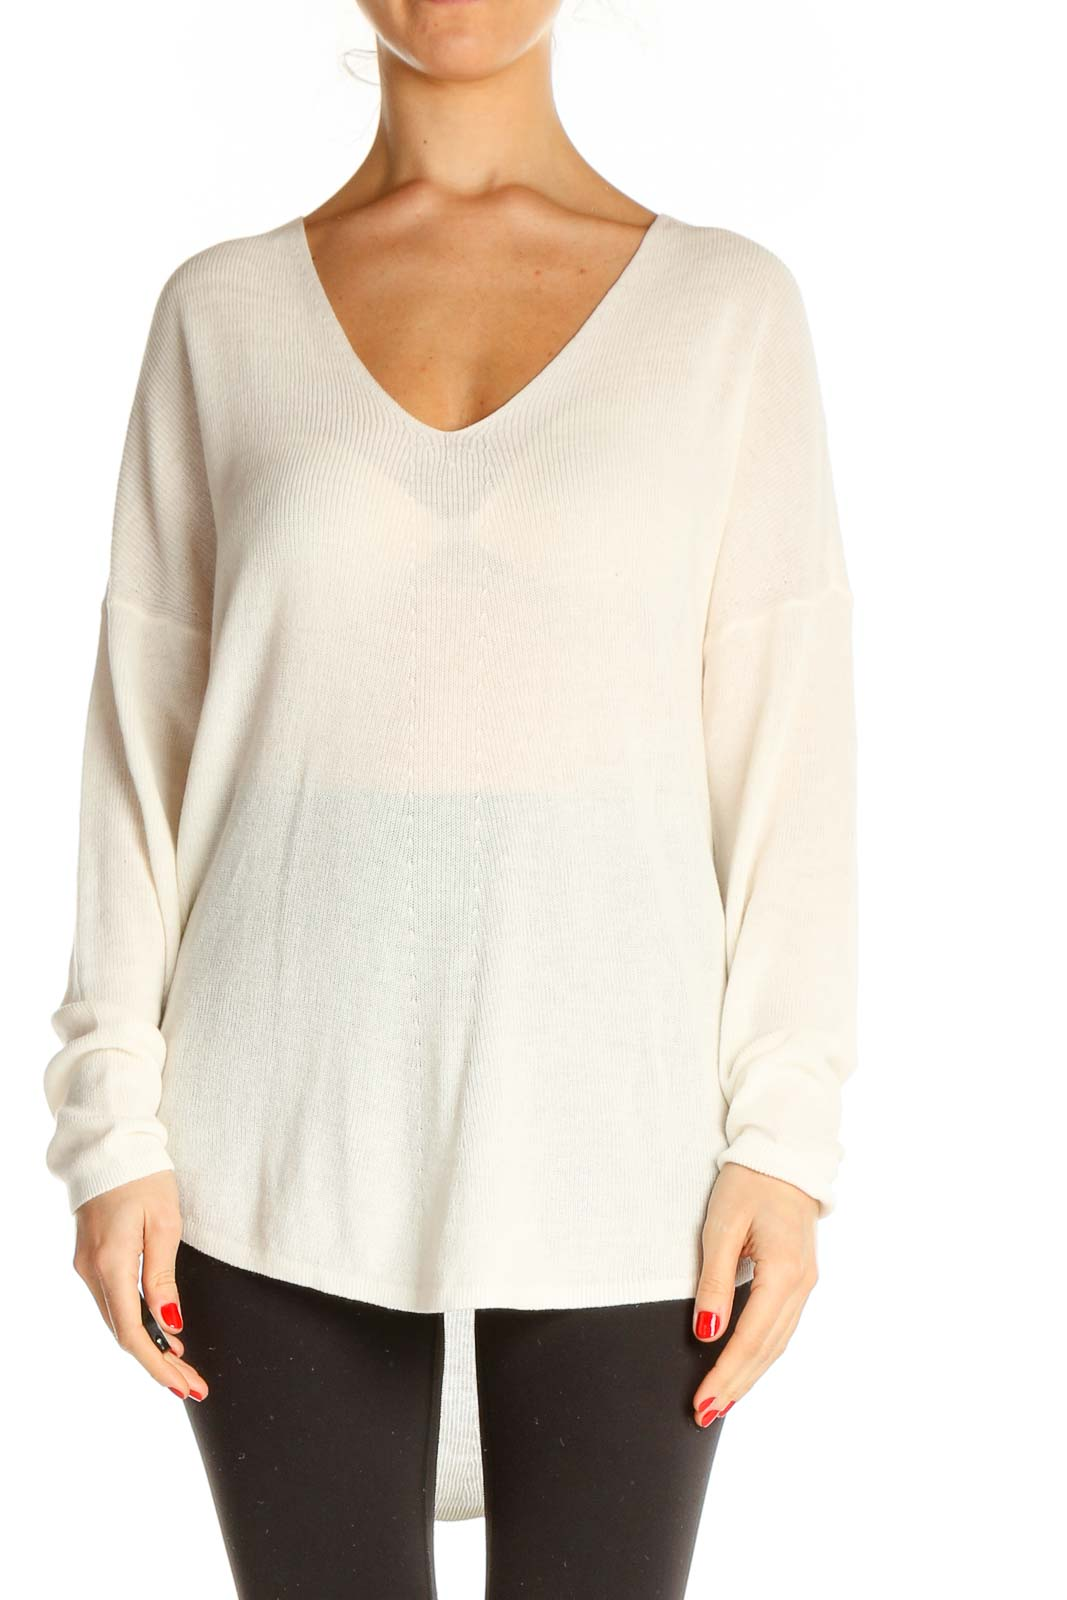 Beige Solid All Day Wear Sweater Front